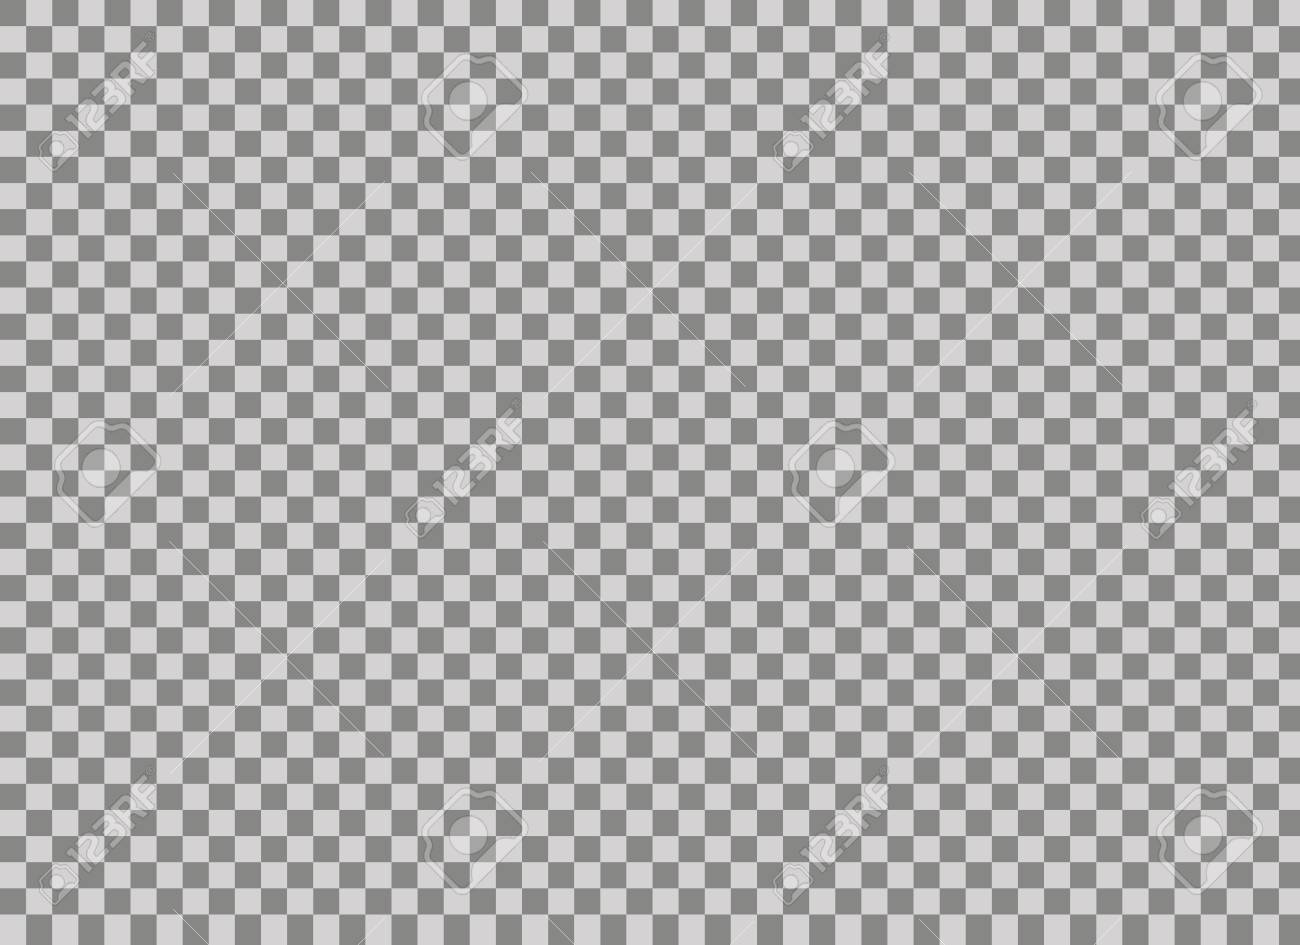 Transparent Background Transparent Grid Colorless Gray And White 1300x945